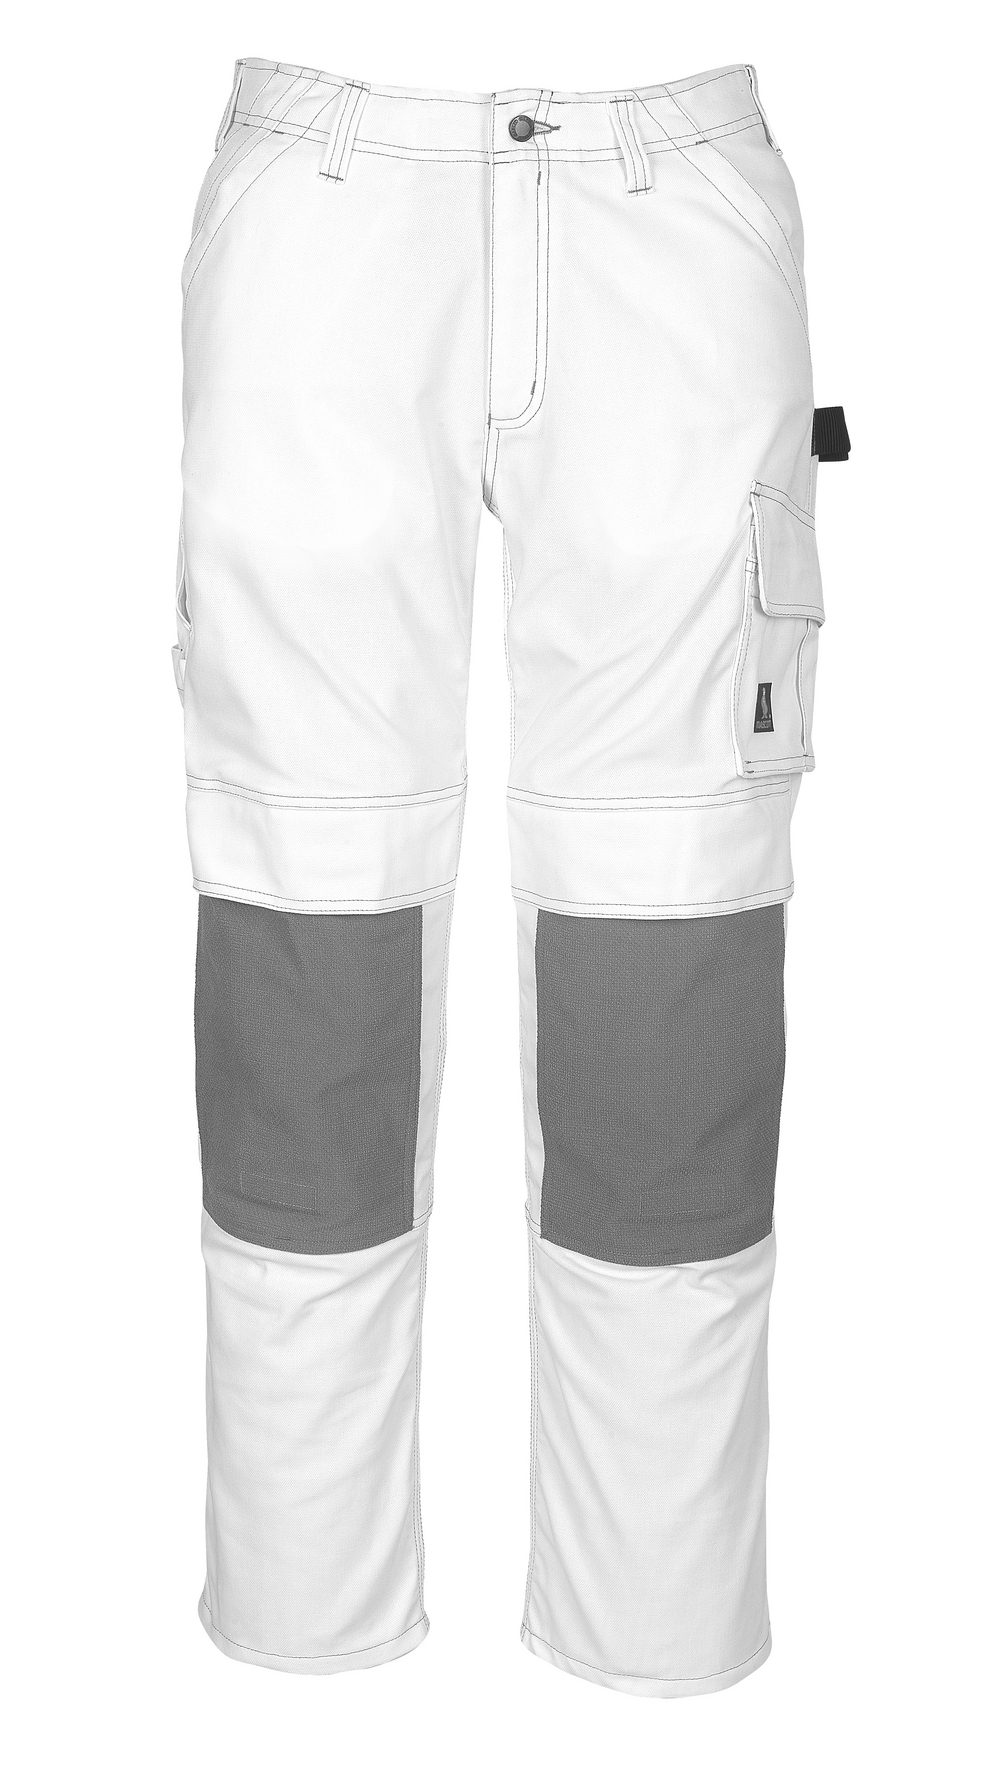 Lerida Trousers with Kevlar® Knee Pad Pockets White